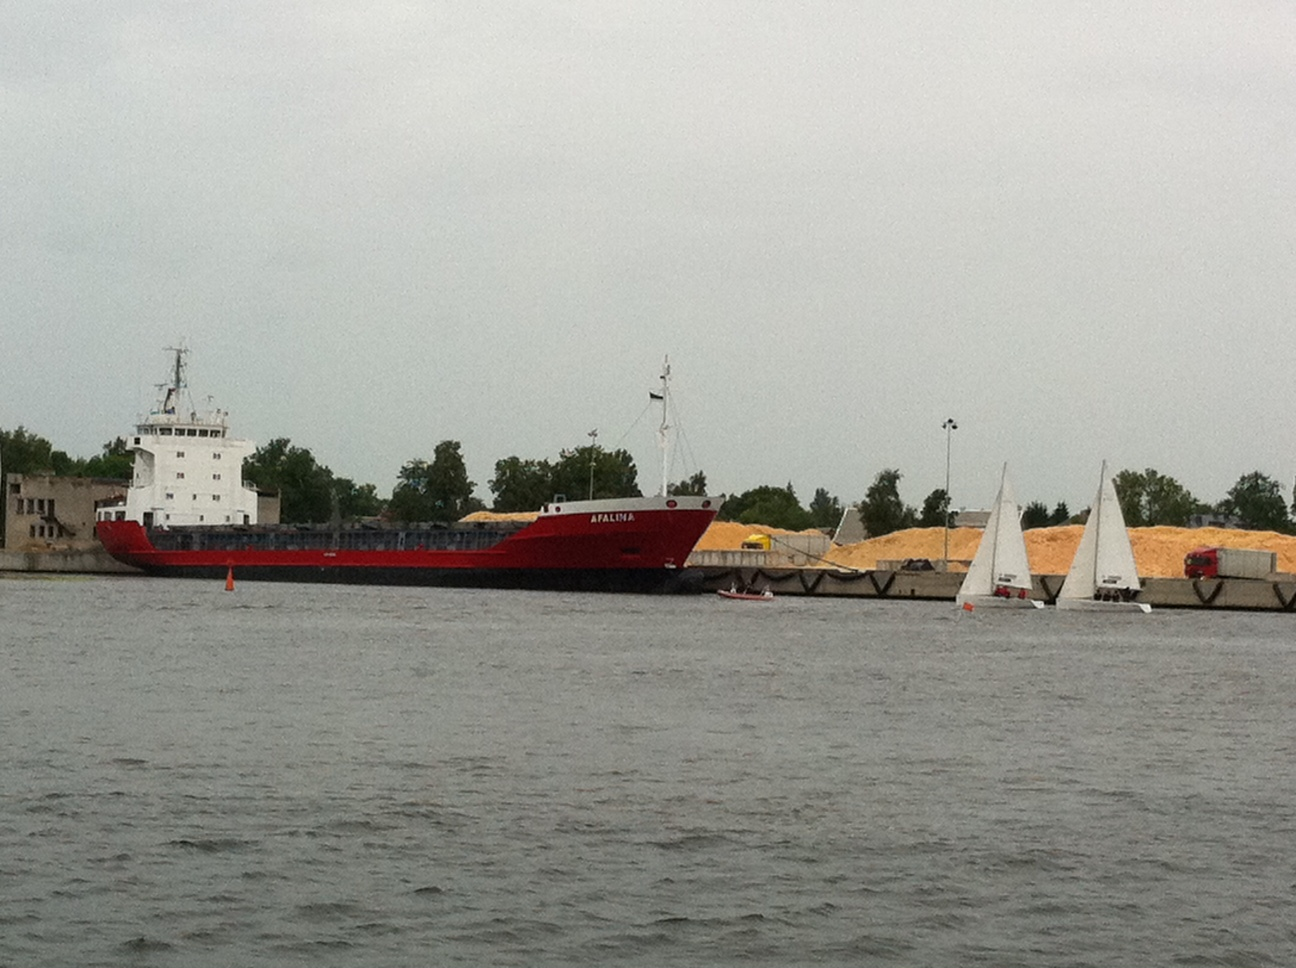 Match Racing At Parnu In Estonia Supplied Image